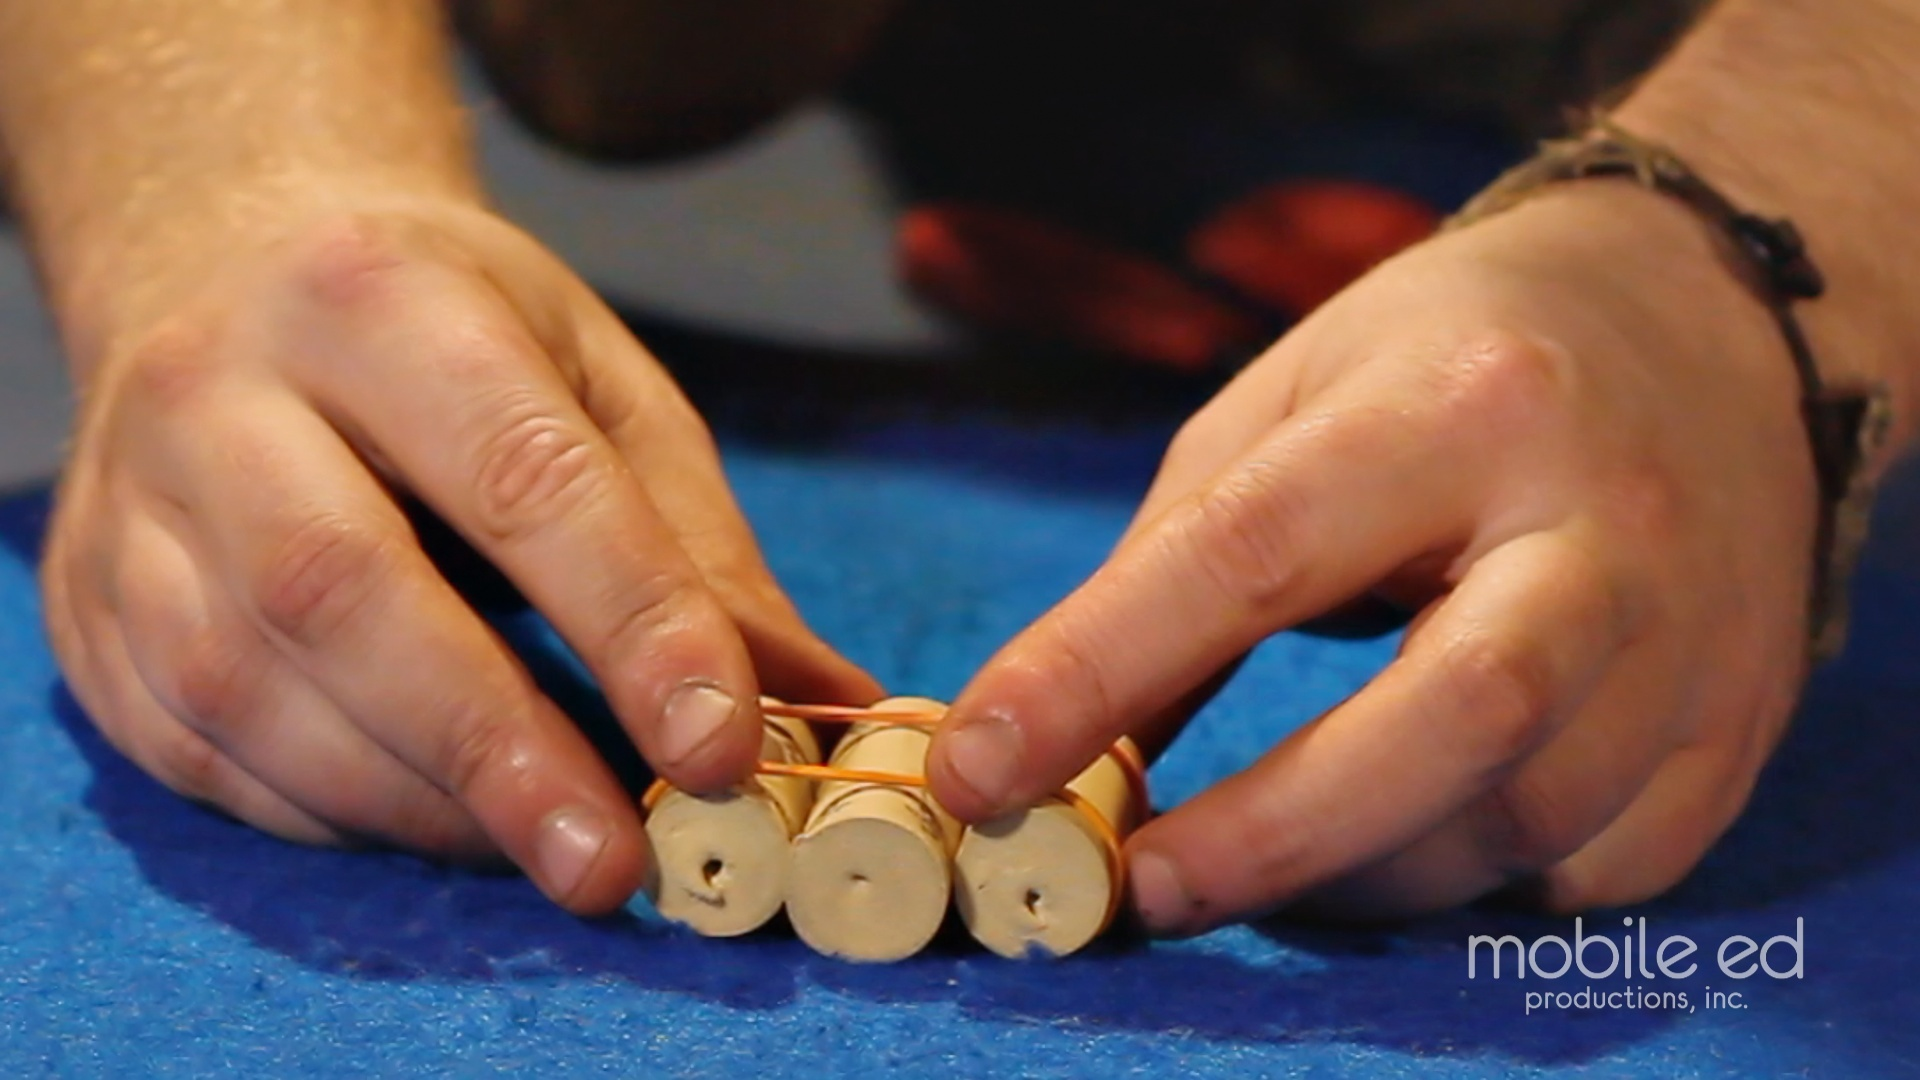 Spread the rubber bands to the ends of the corks | Handy Dan the Junkyard Man | Mobile Ed Productions